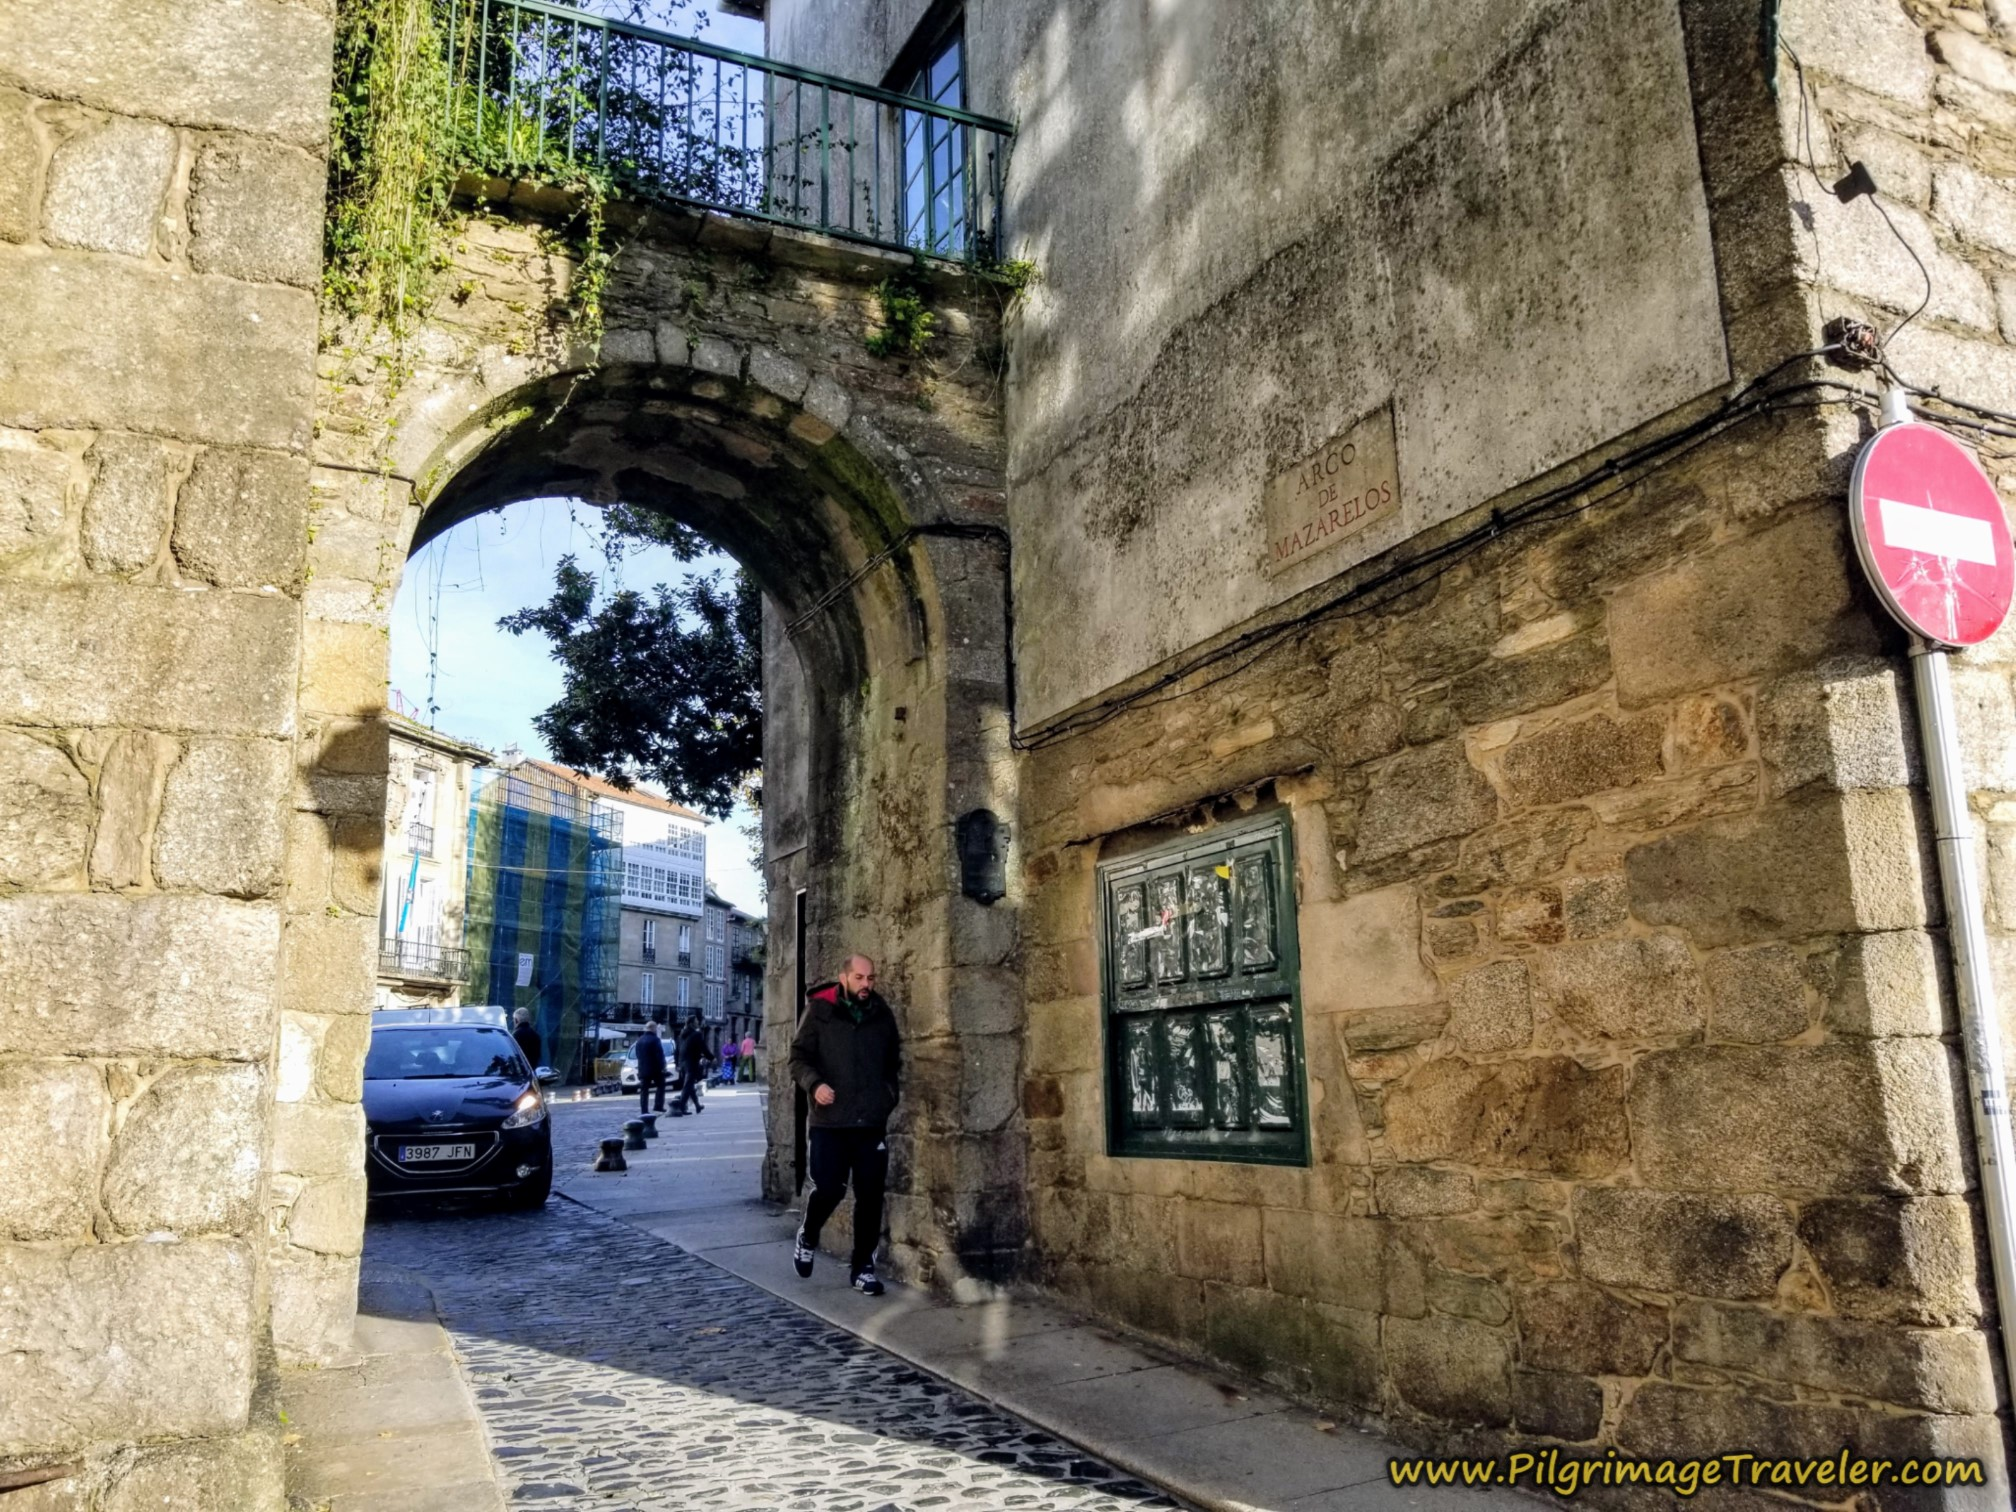 Walk Through the Medieval Gate, the Arco de Mazarelos on the Camino Sanabrés from A Susana to Santiago de Compostela